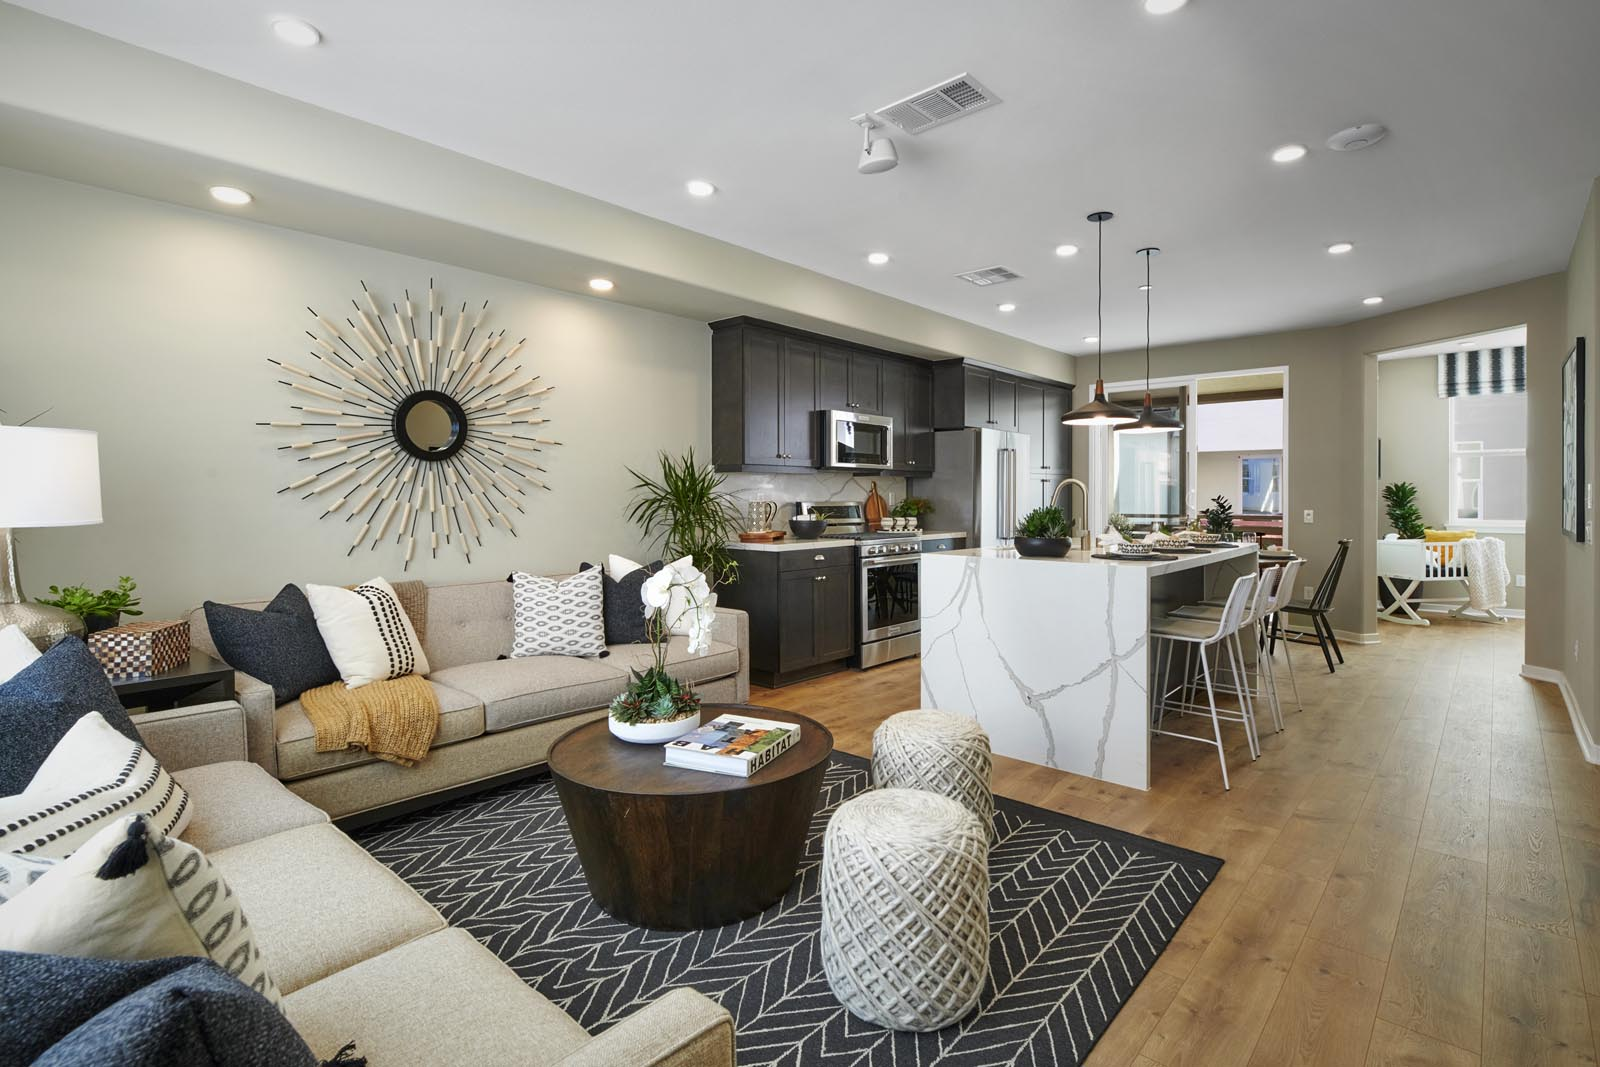 Great Room to Kitchen   Residence 2   Enliven   New Homes in Rancho Cucamonga, CA   Van Daele Homes